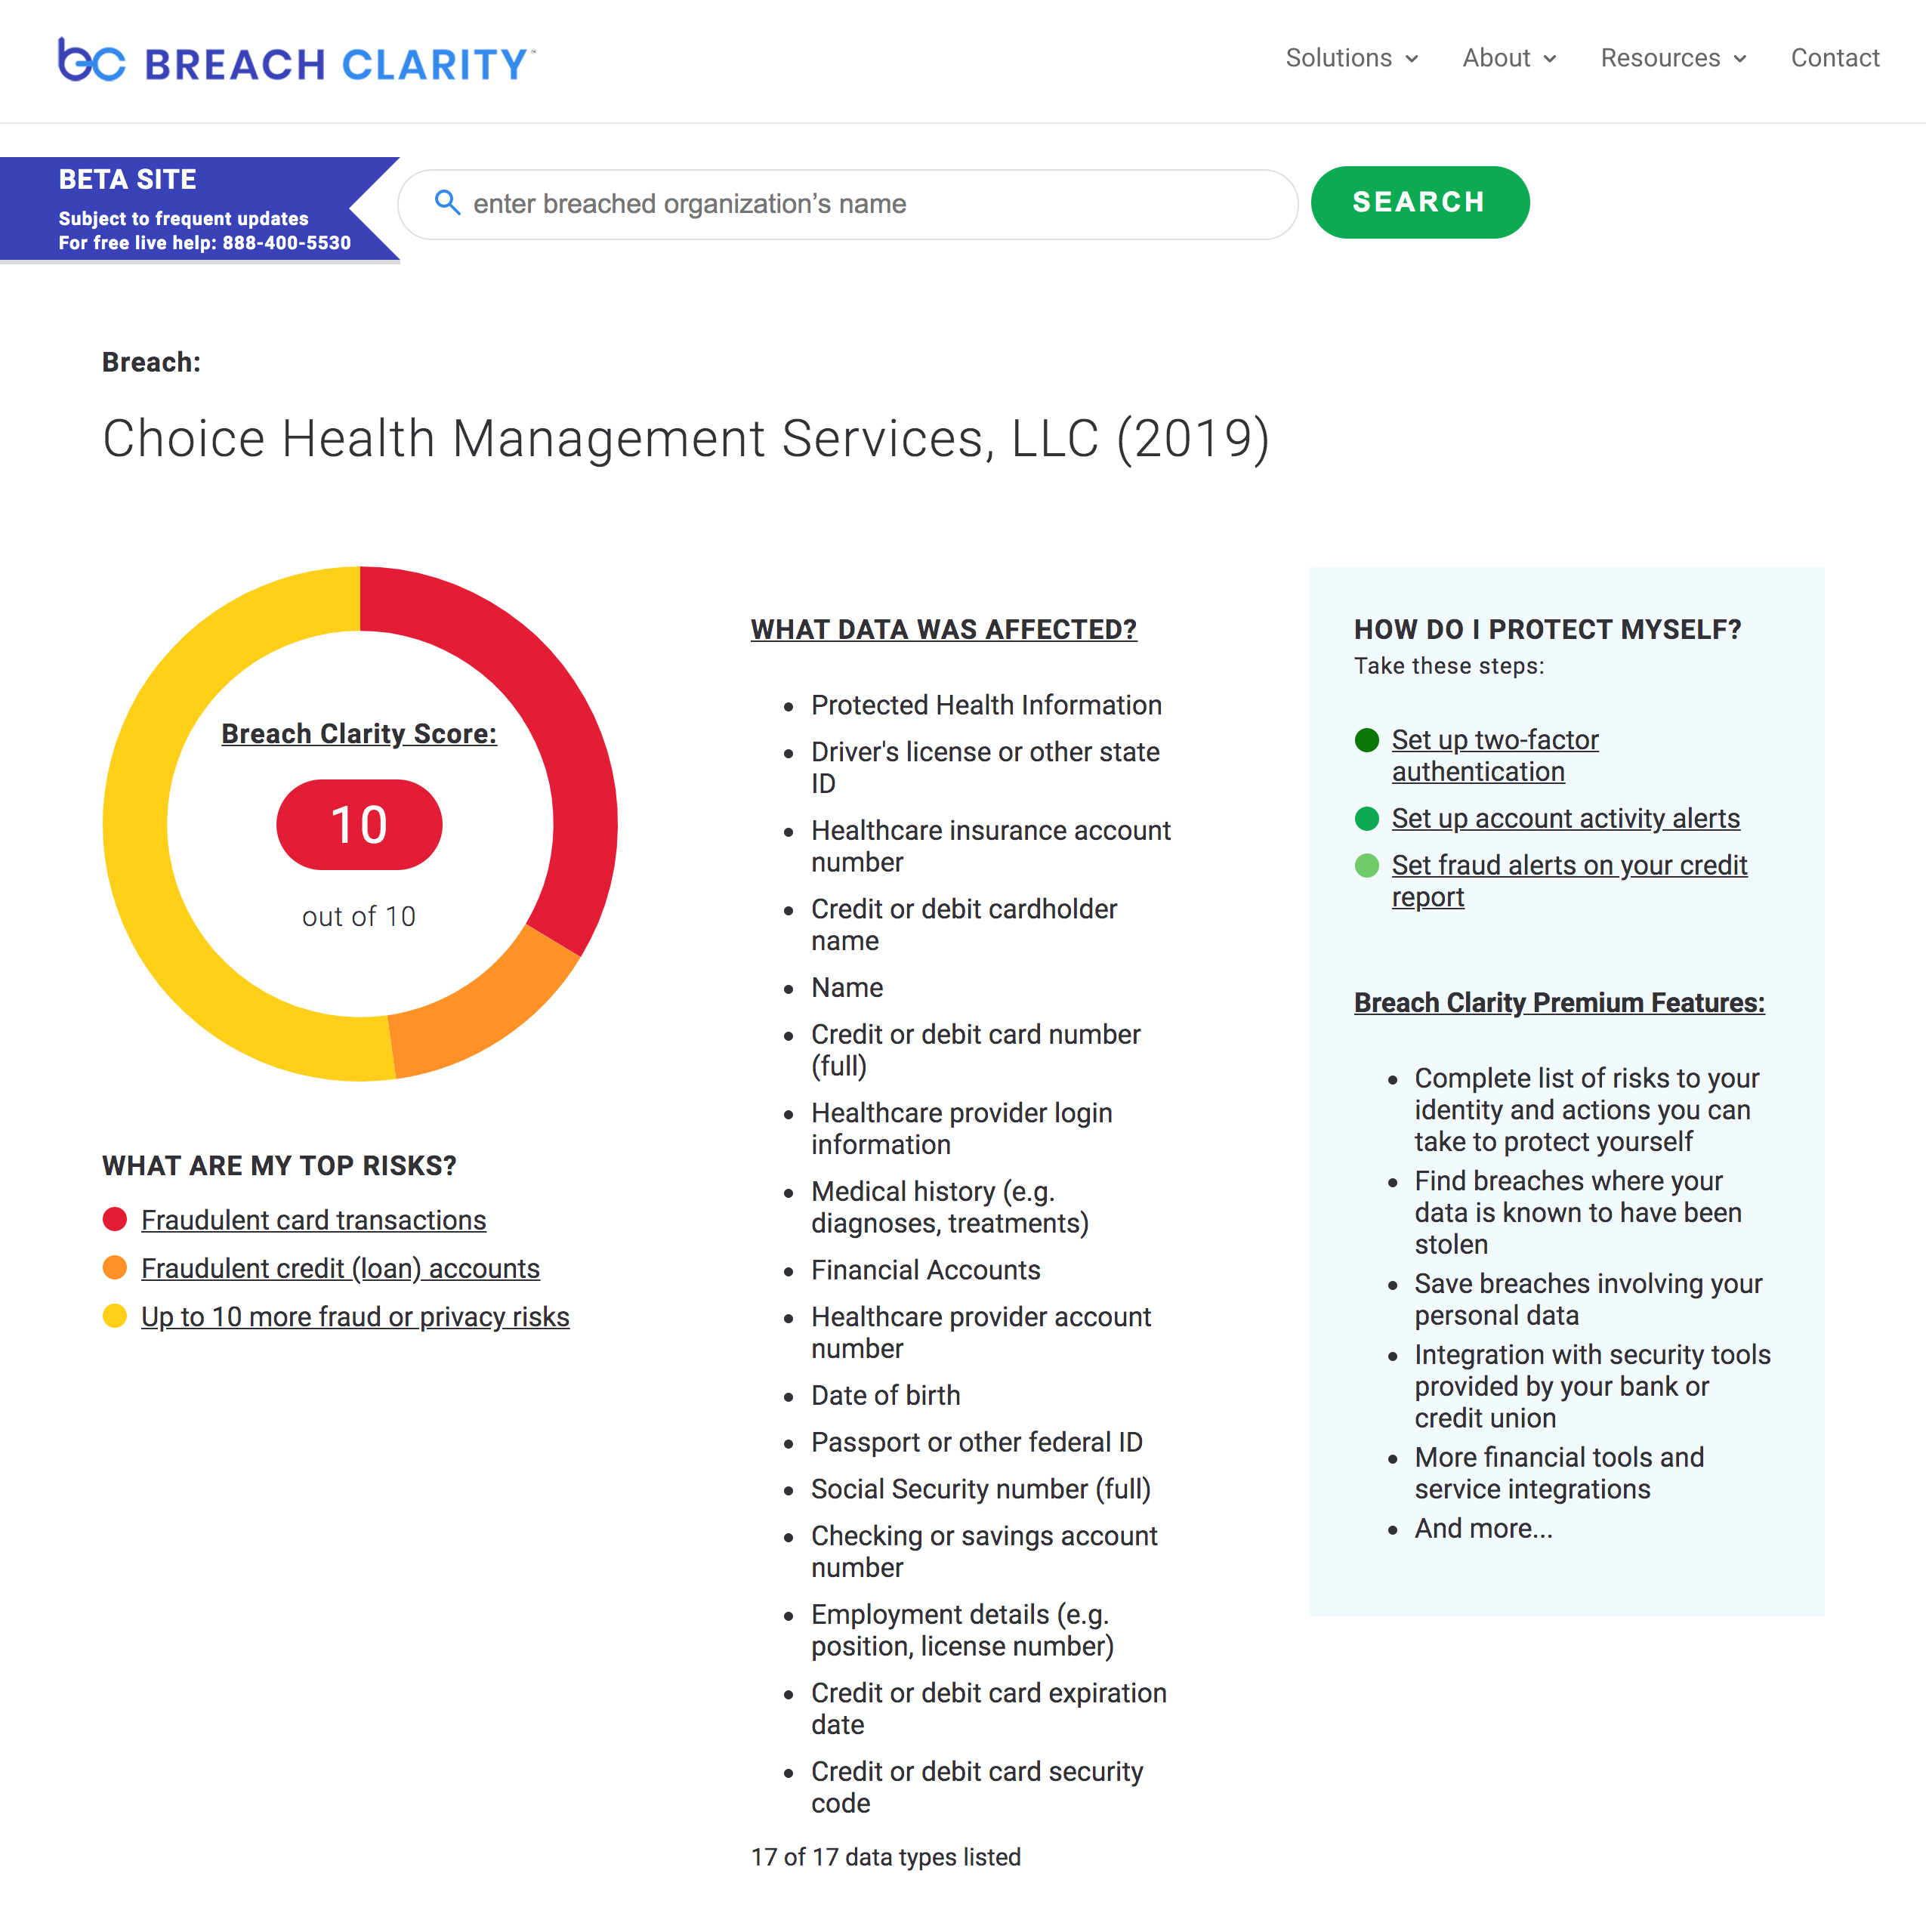 Choice Health Management Services, LLC 10 Breach Clarity